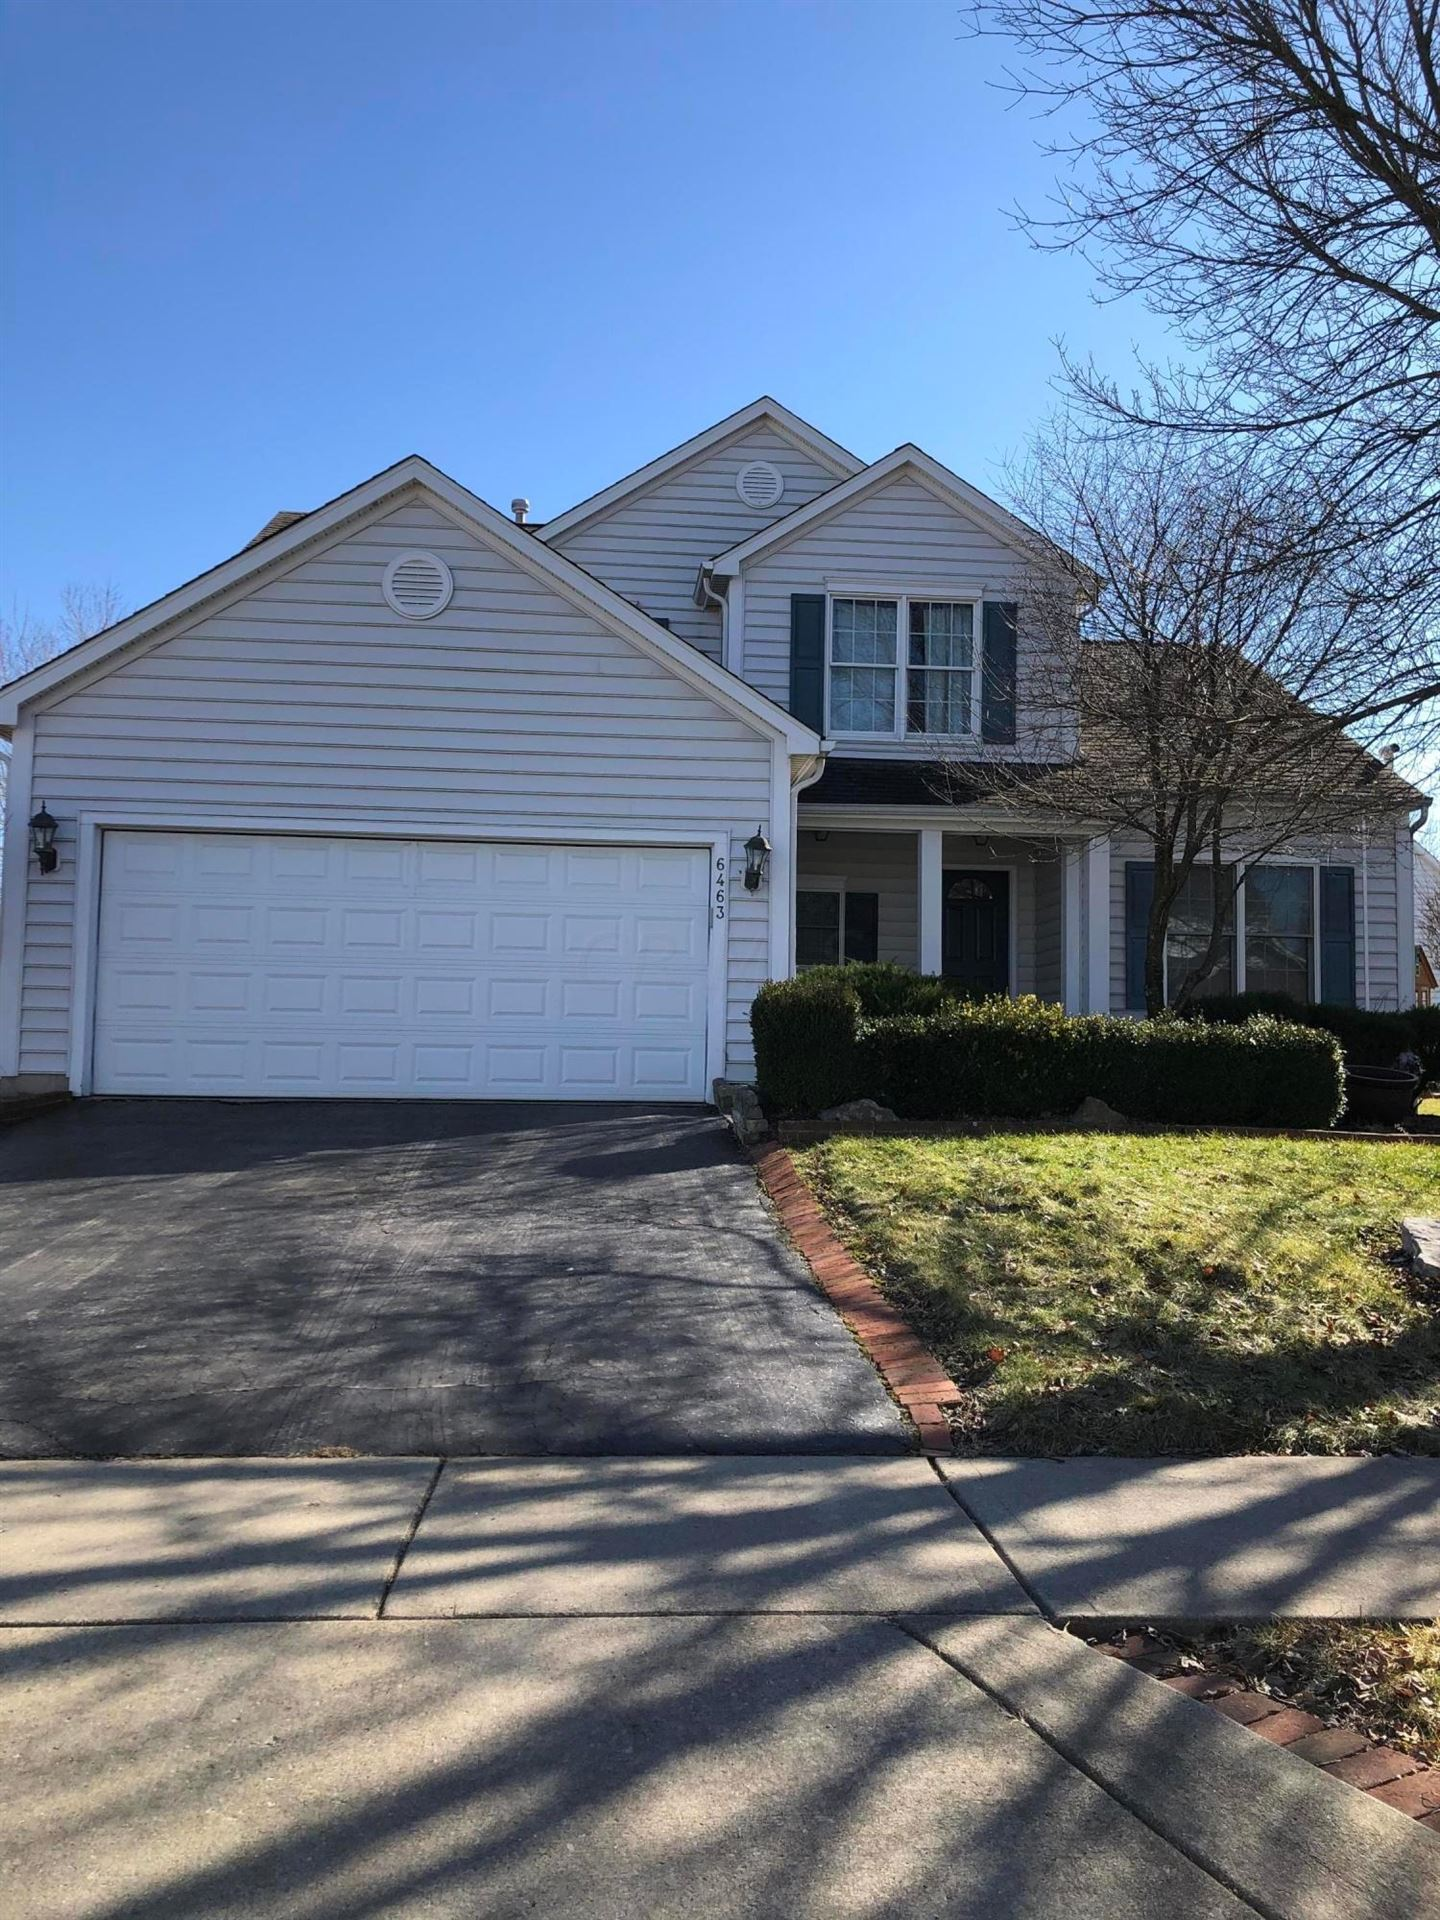 Photo of 6463 Rose Garden Drive, New Albany, OH 43054 (MLS # 221004967)